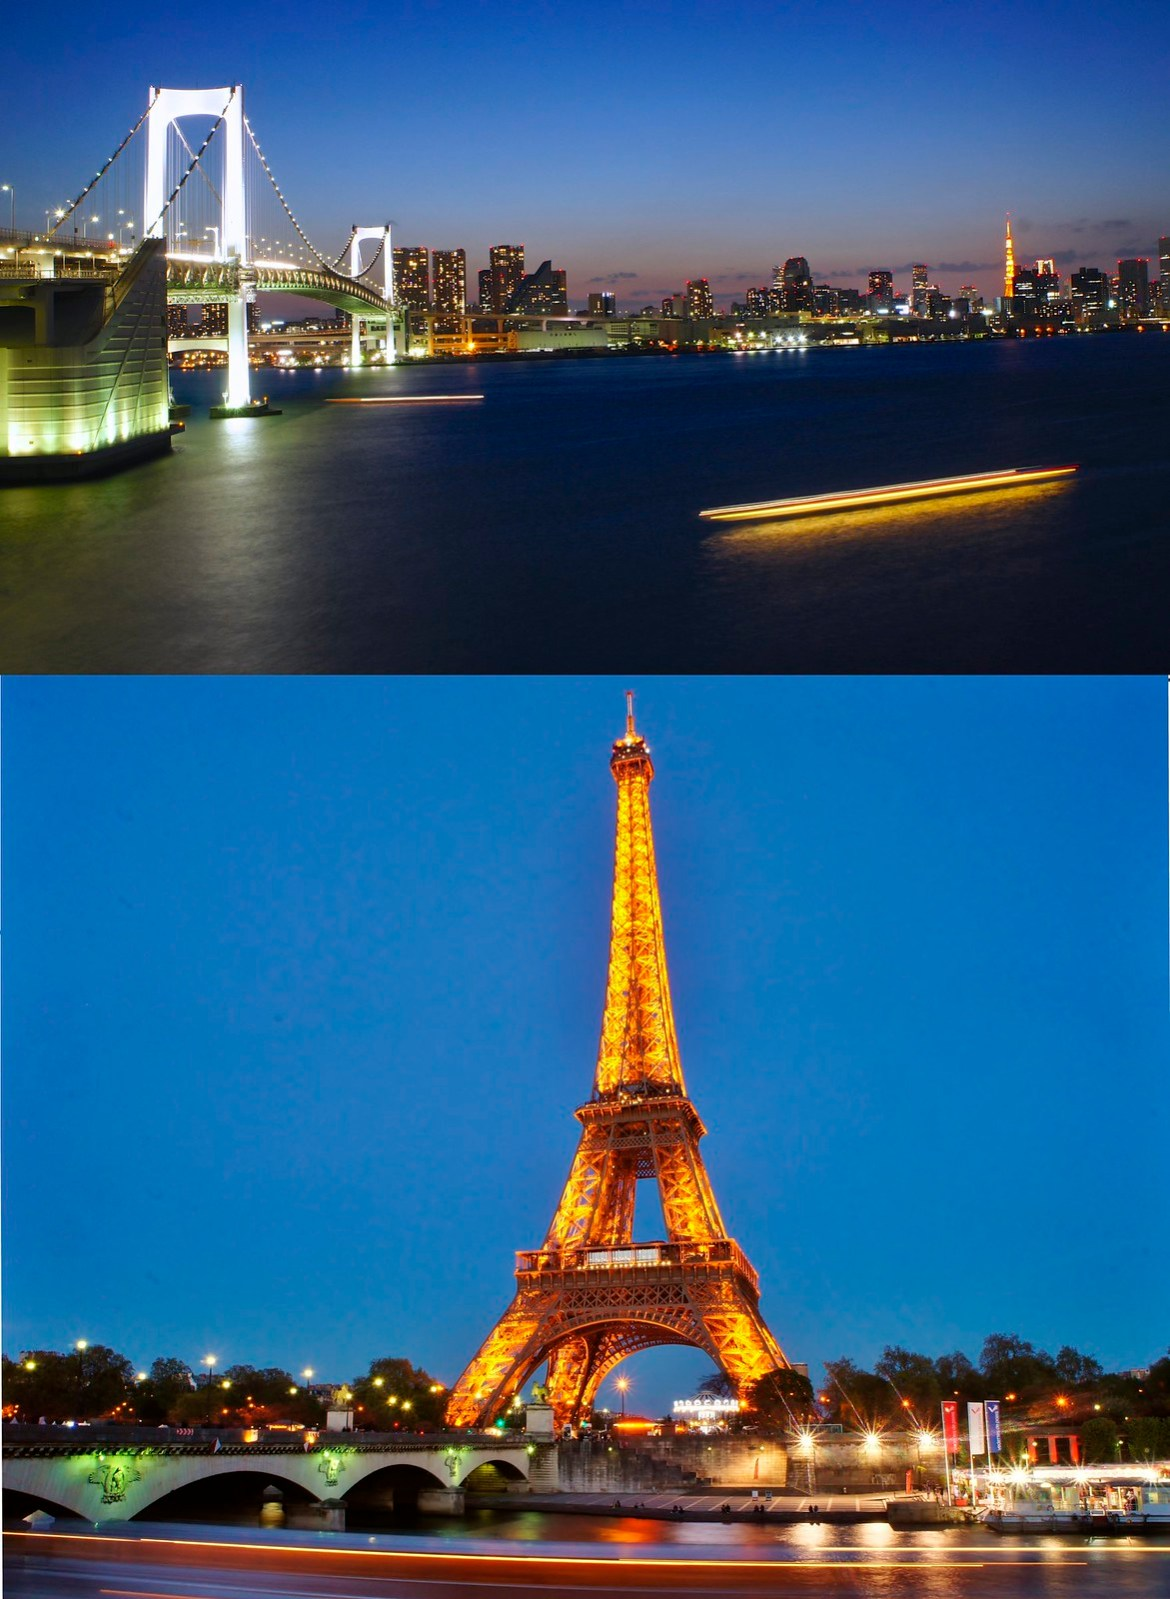 Ship trails of Eiffel Tower and Tokyo Tower